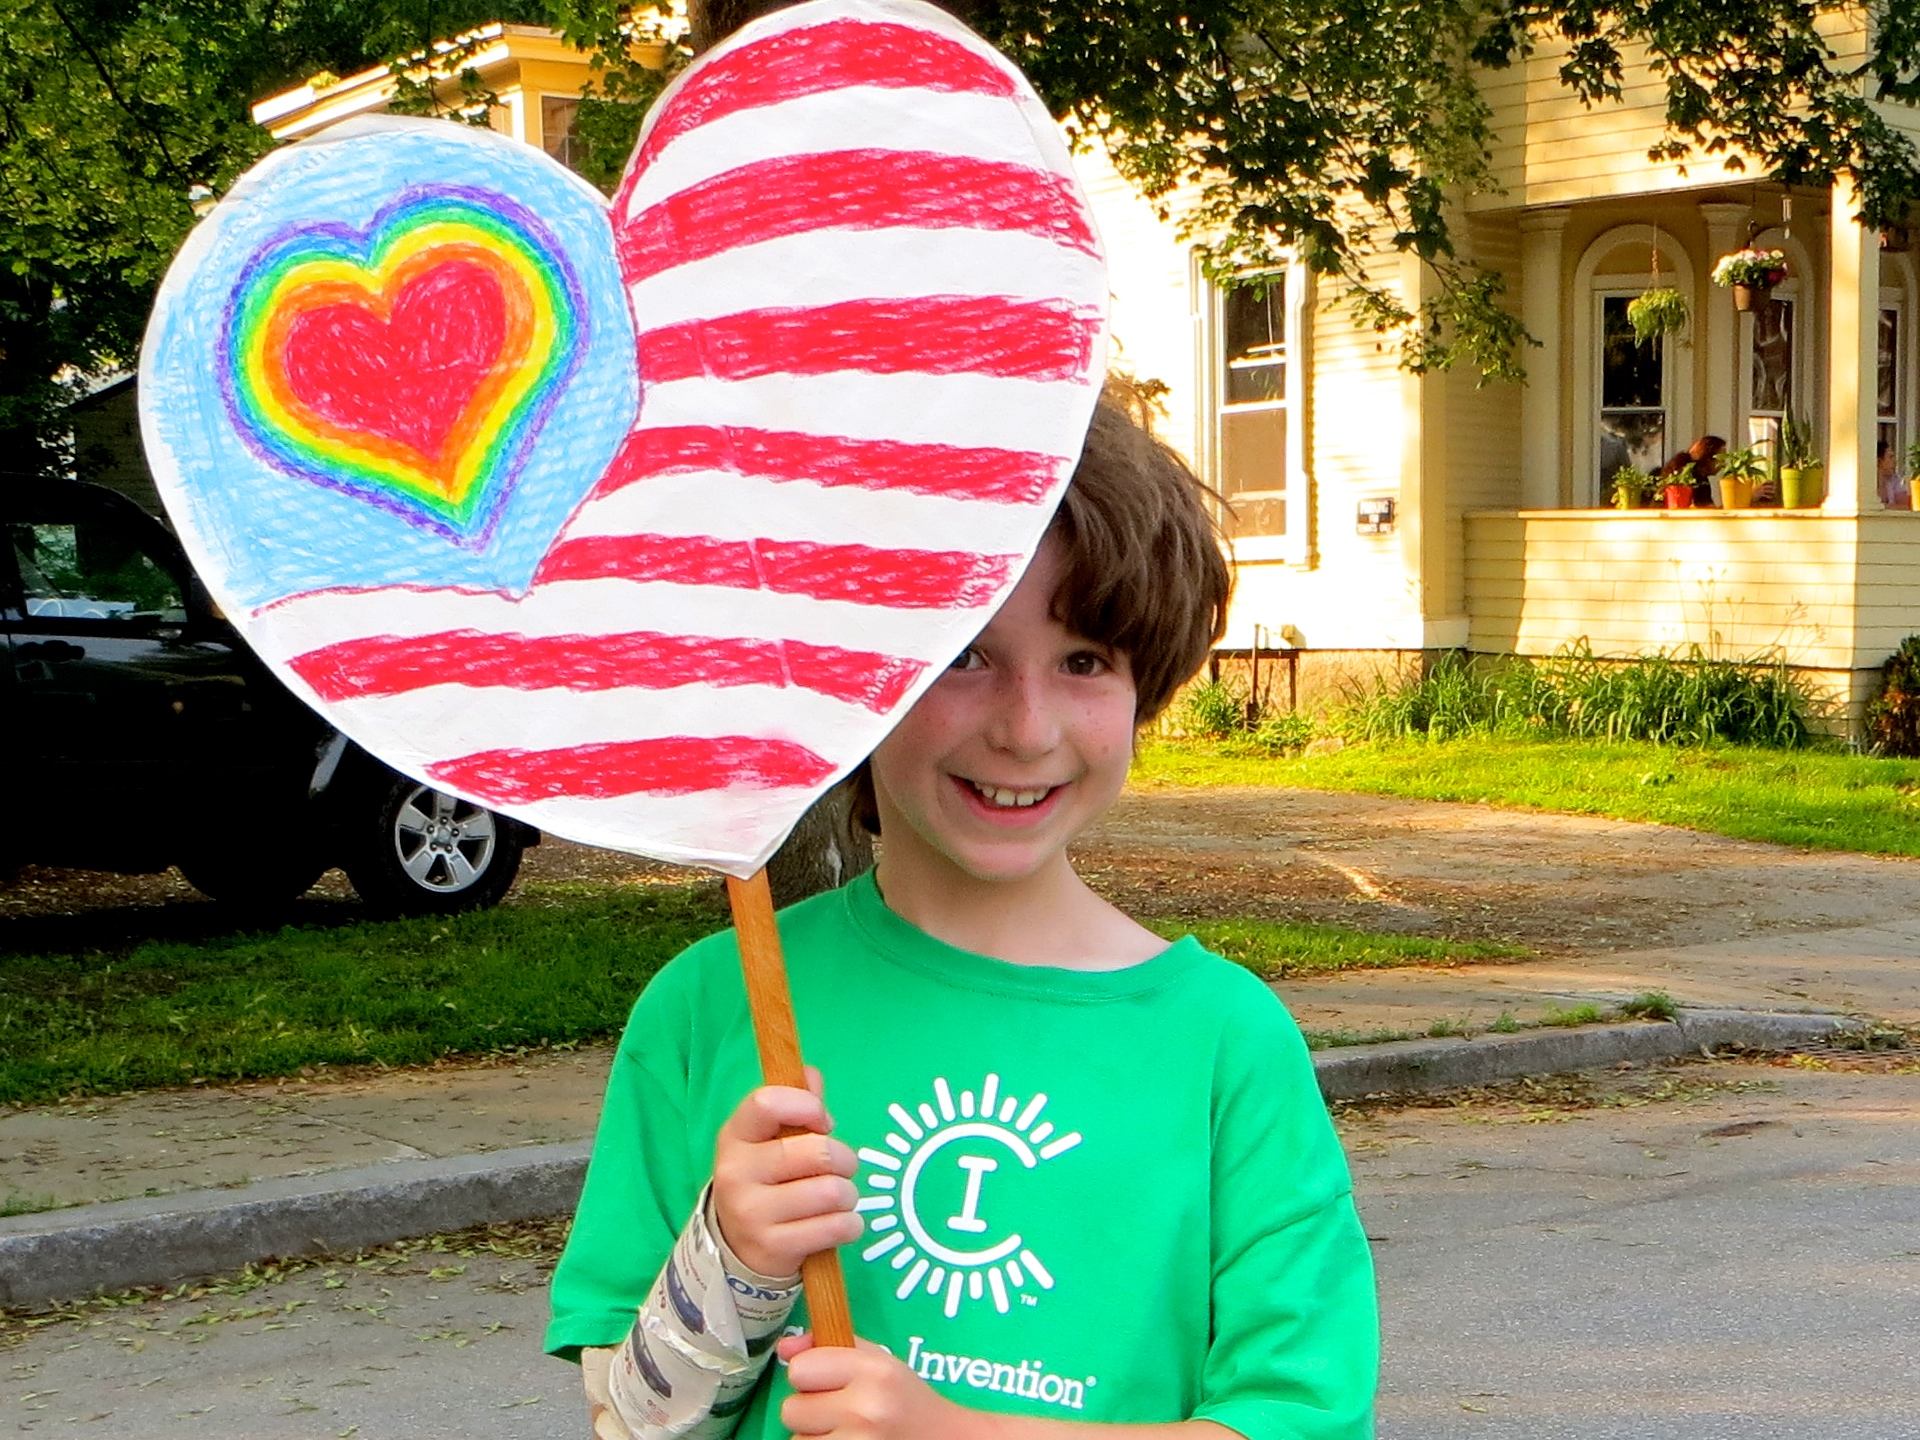 Boy holding hand colored heart shaped banner.